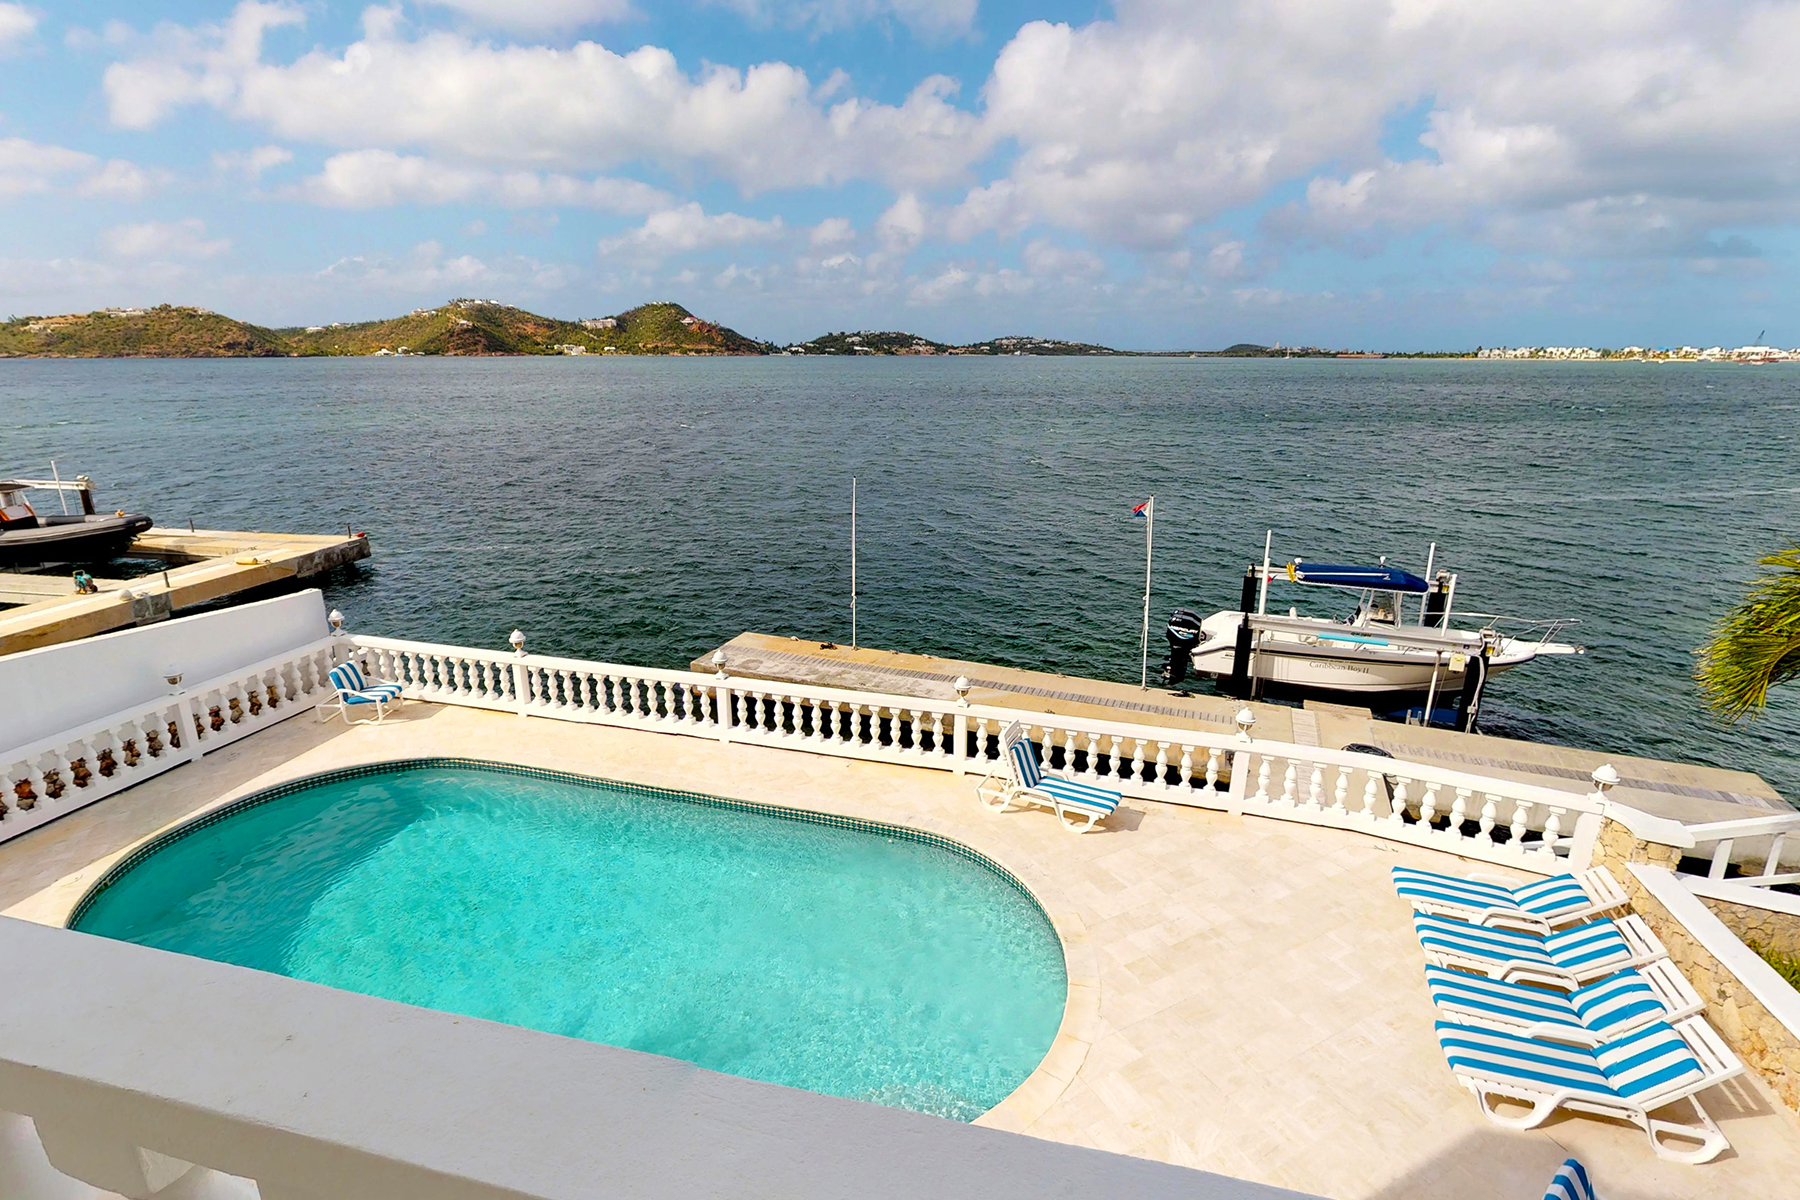 Price Reduced on Point Pirouette Villa in St. Maarten